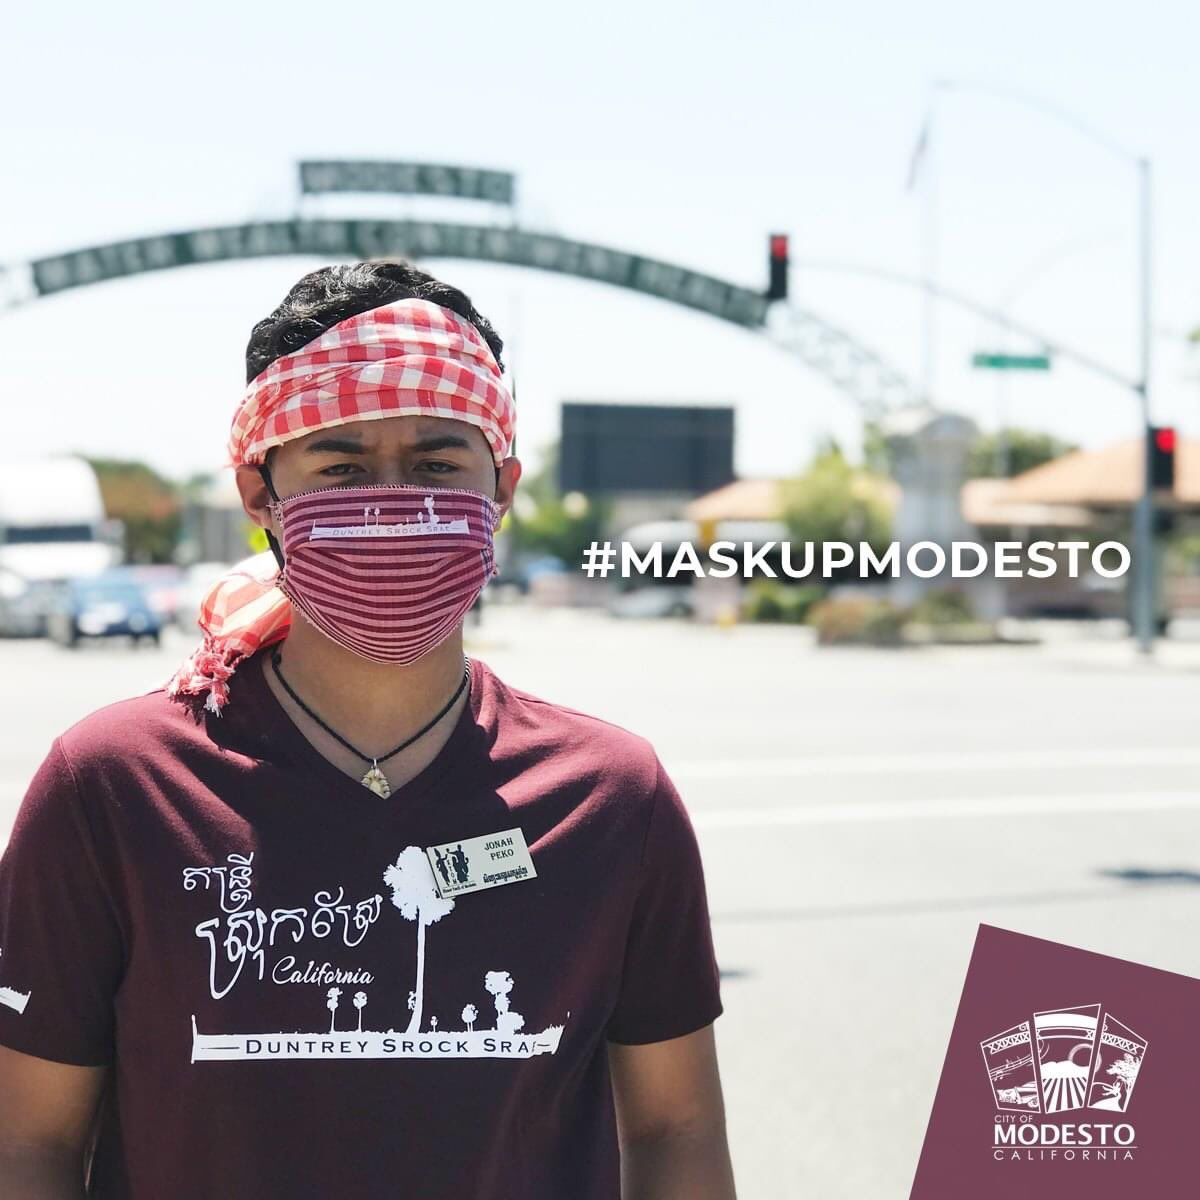 Even without symptoms, you could expose others to COVID-19. Wear a mask and practice physical distancing to help slow the spread and protect your loved ones. Mask up Modesto we got this! #MaskUpModesto #SlowTheSpread #WearAMaskSaveALife #YourActionsSaveLives #ModestoStrong